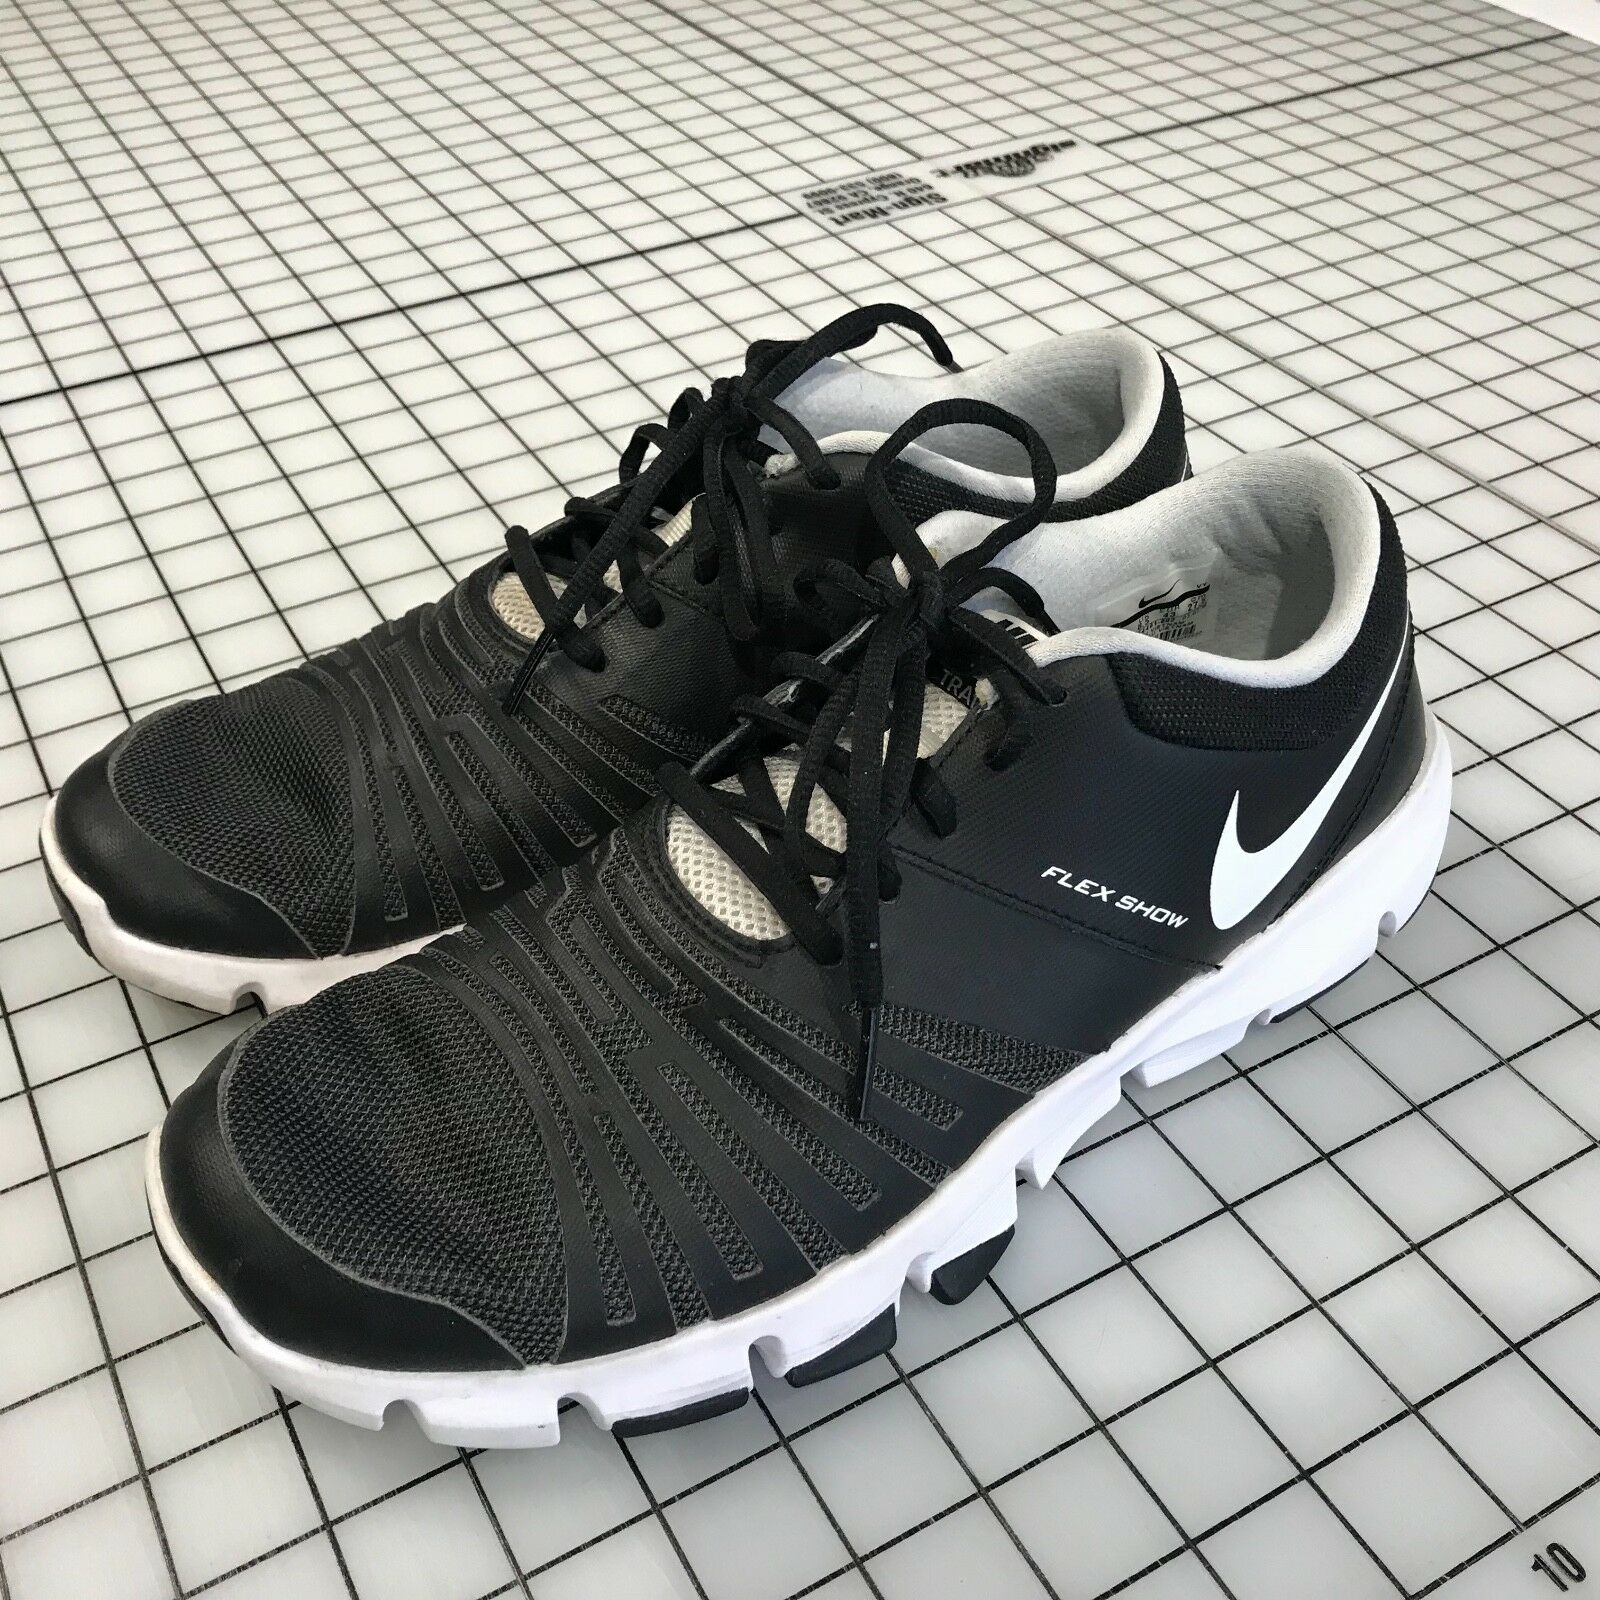 Nike Men's Flex Show TR 5 Training Shoe Black/White/Pure Platinum US 9.5